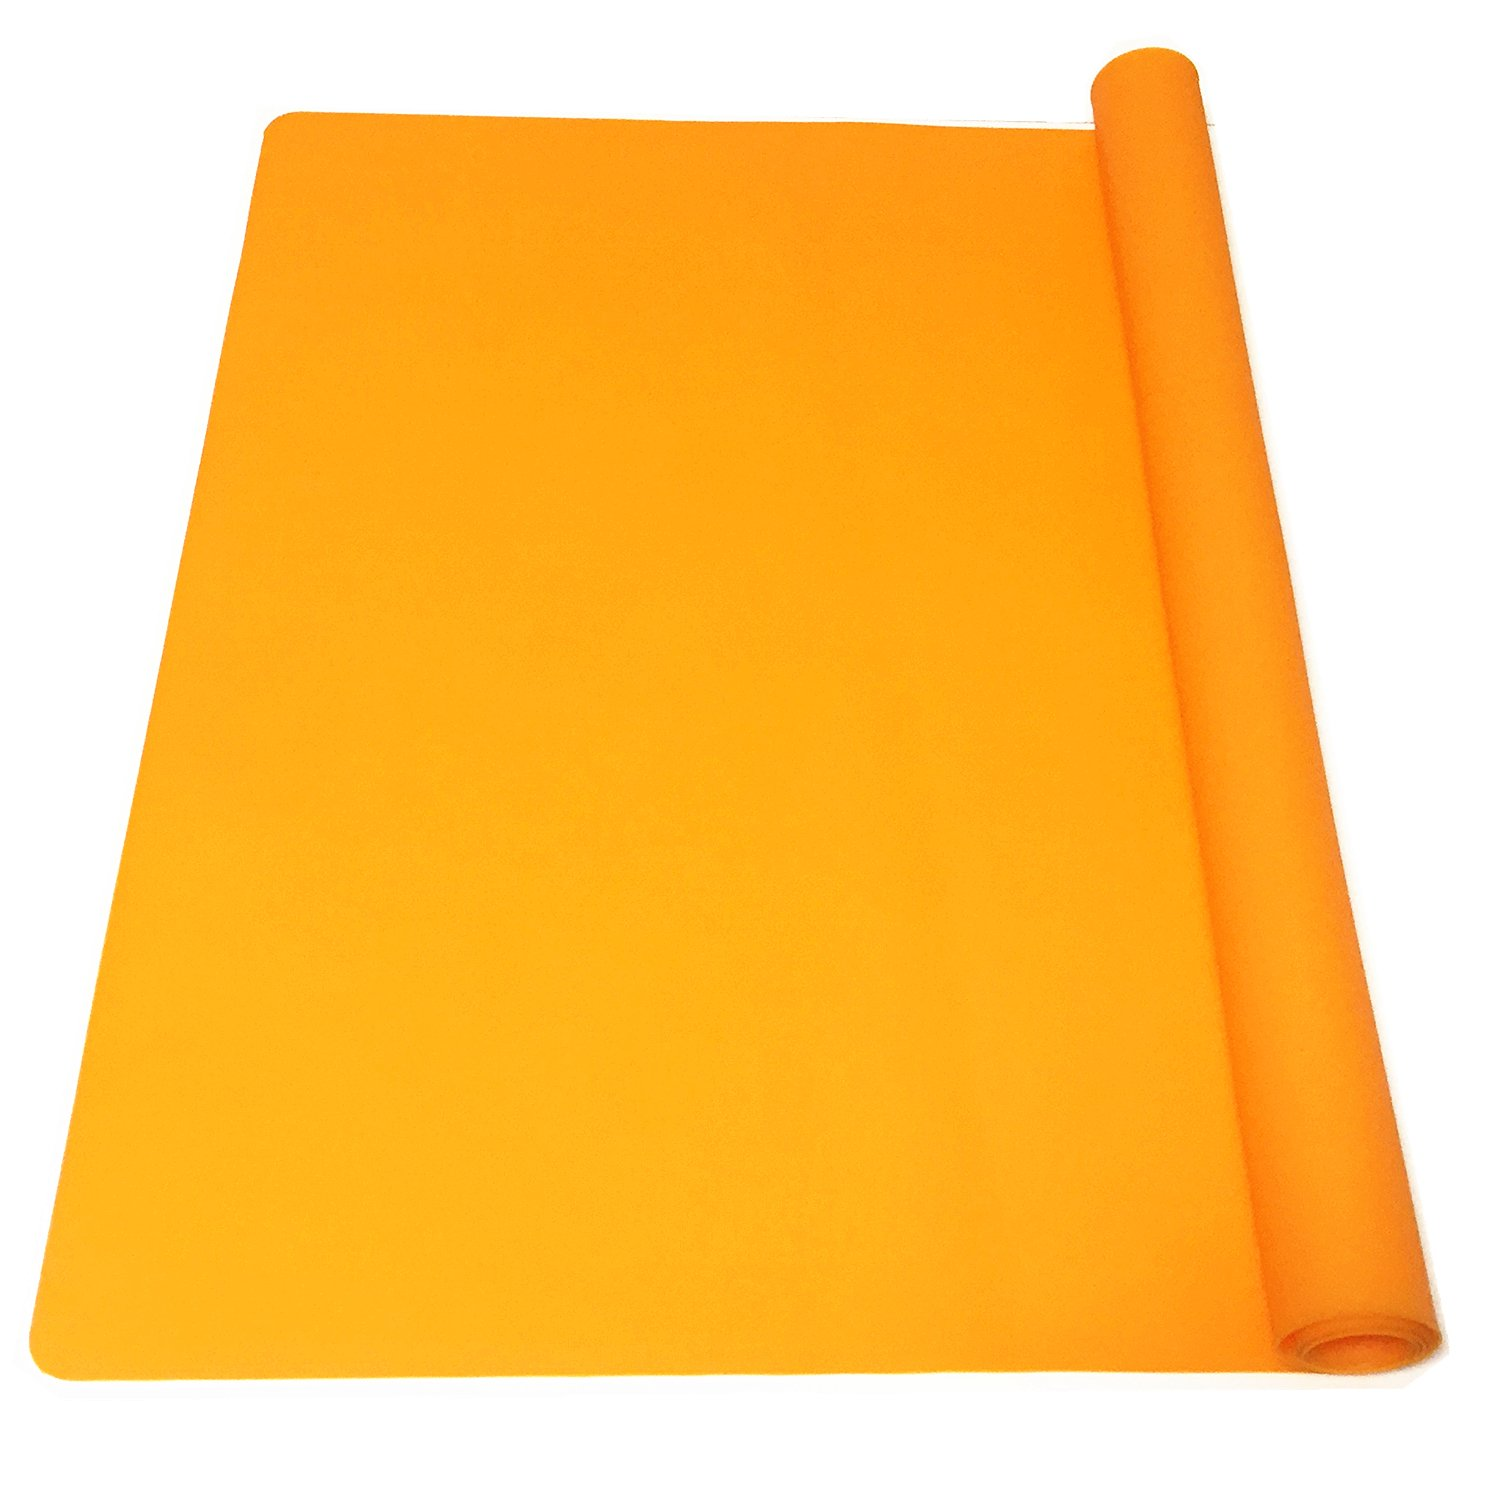 XL G006-11 Countertop Protector 23.615.75 Heat Resistant Nonskid Table Mat 23.6/'/'15.75/'/' XL, Taupe EPHome Extra Large Multipurpose Silicone Nonstick Pastry Mat